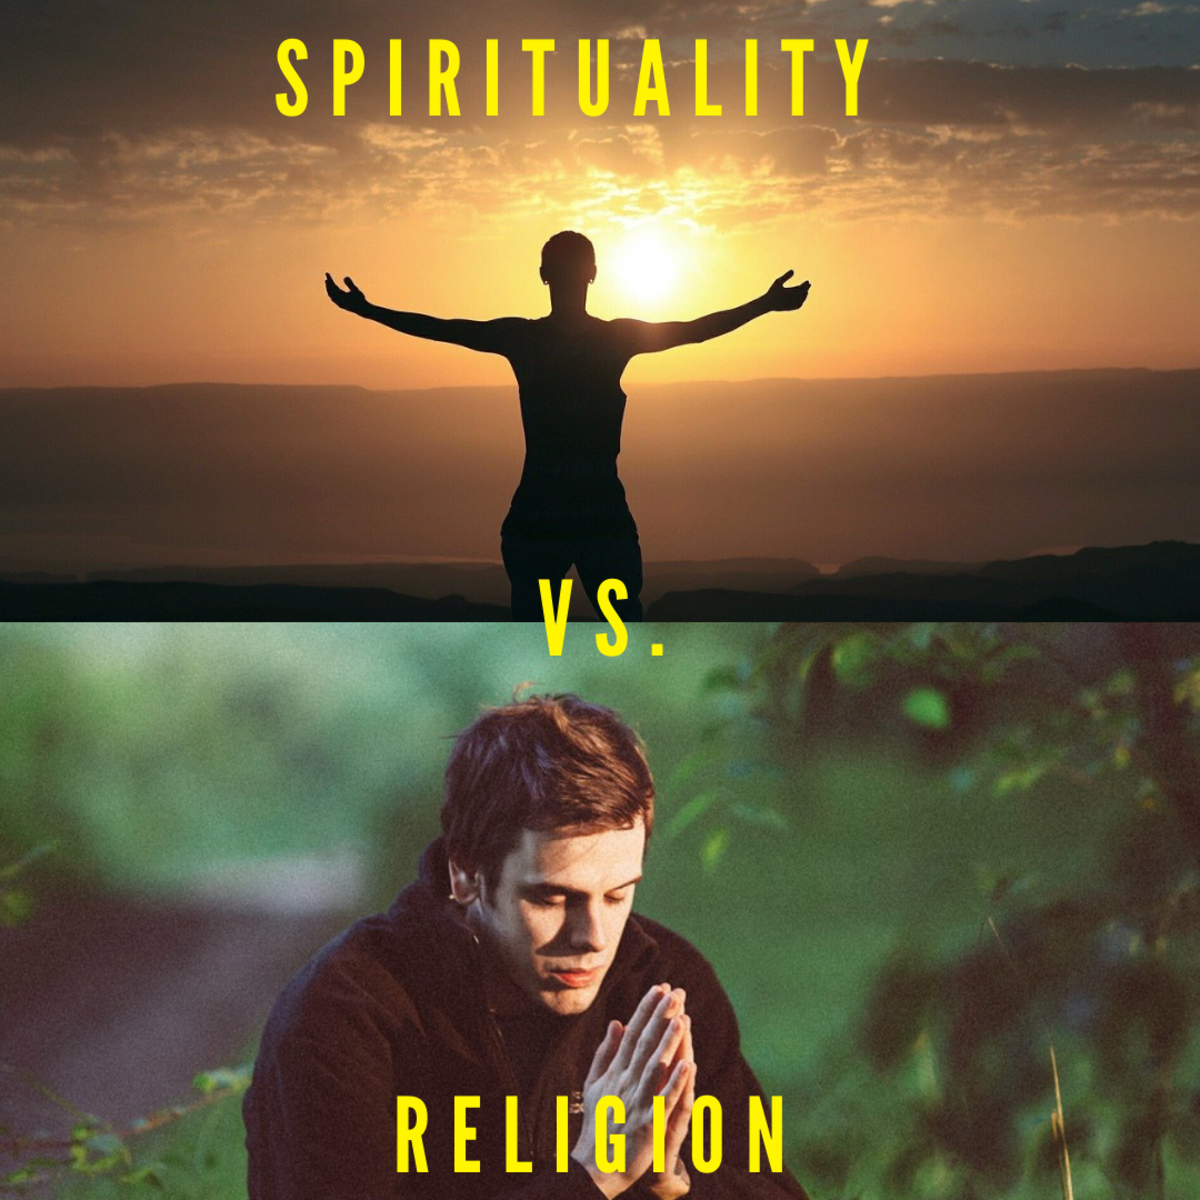 An ultimate guide to the difference between spirituality and religion.